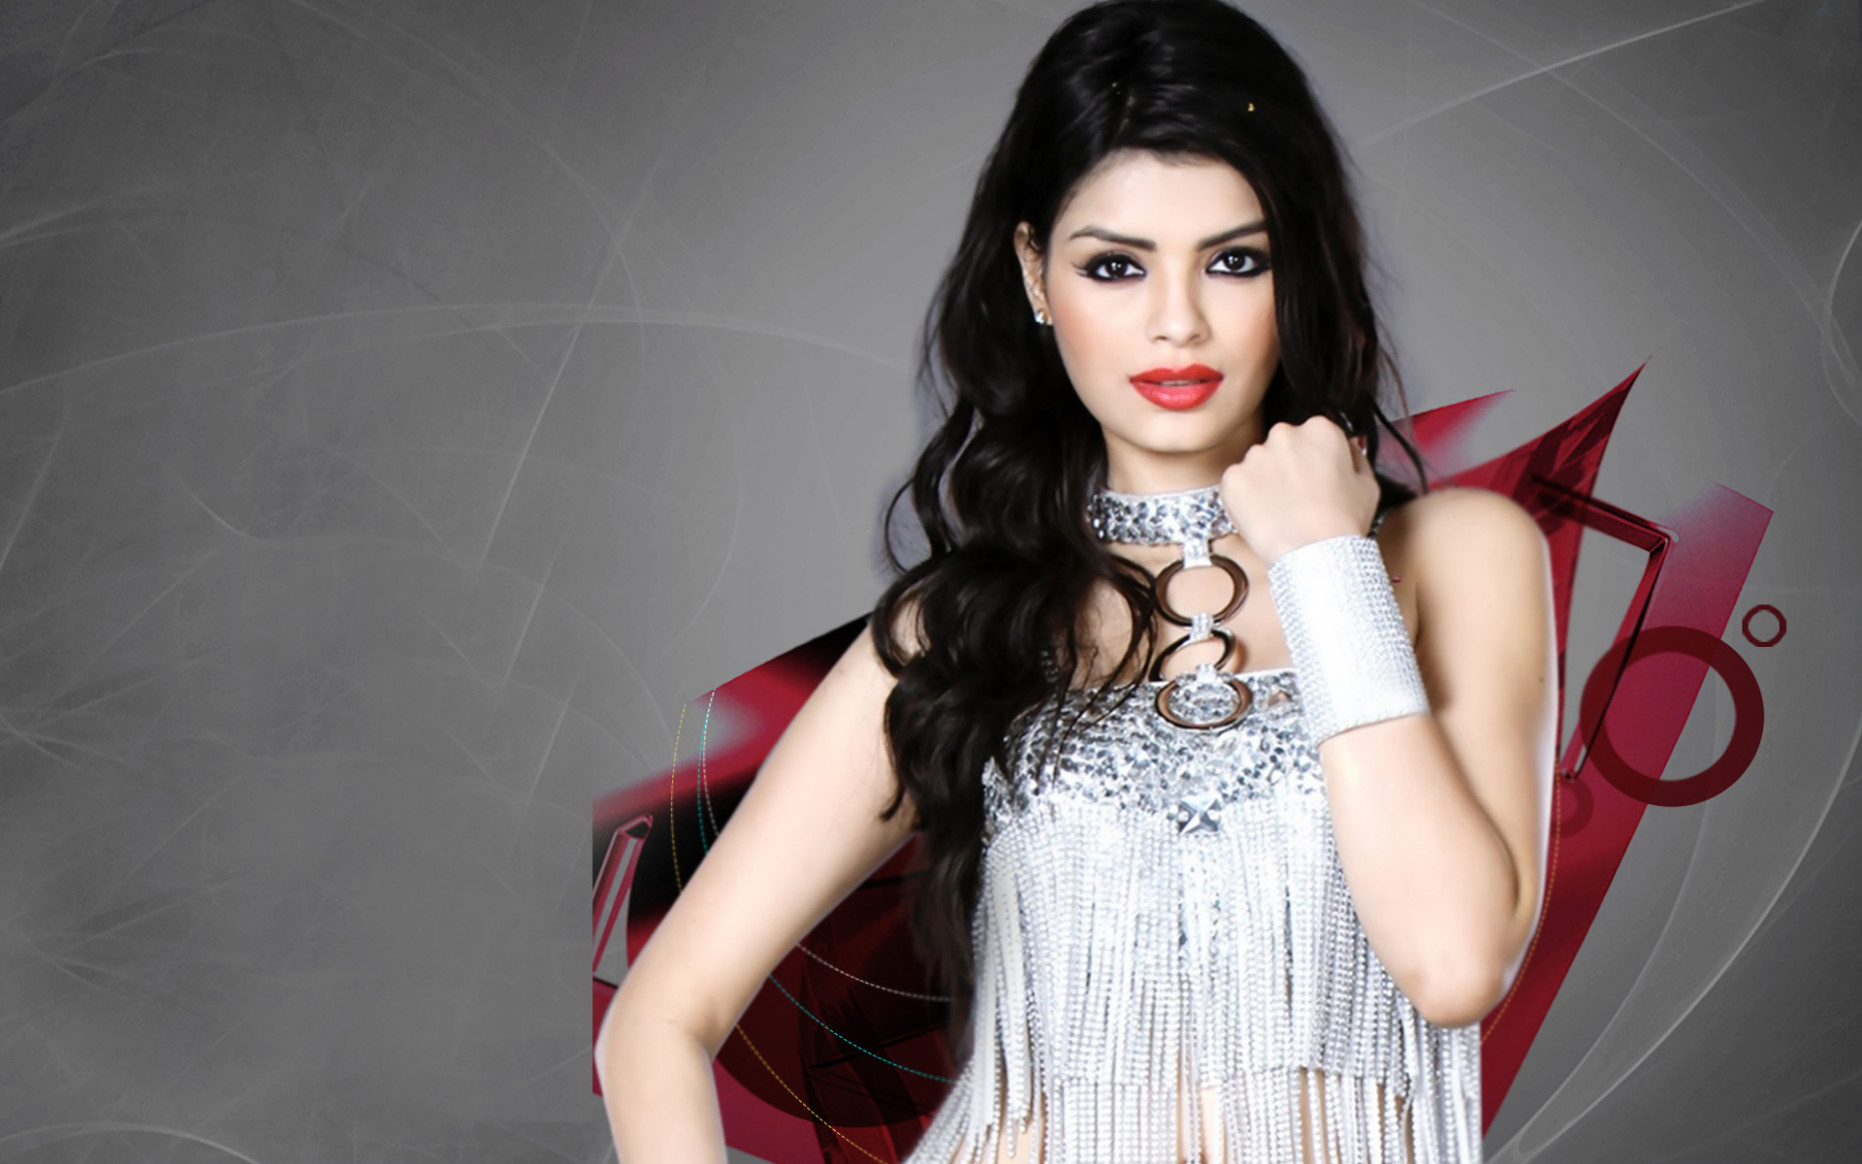 bollywood actress sonali raut new wallpaper wallpapers